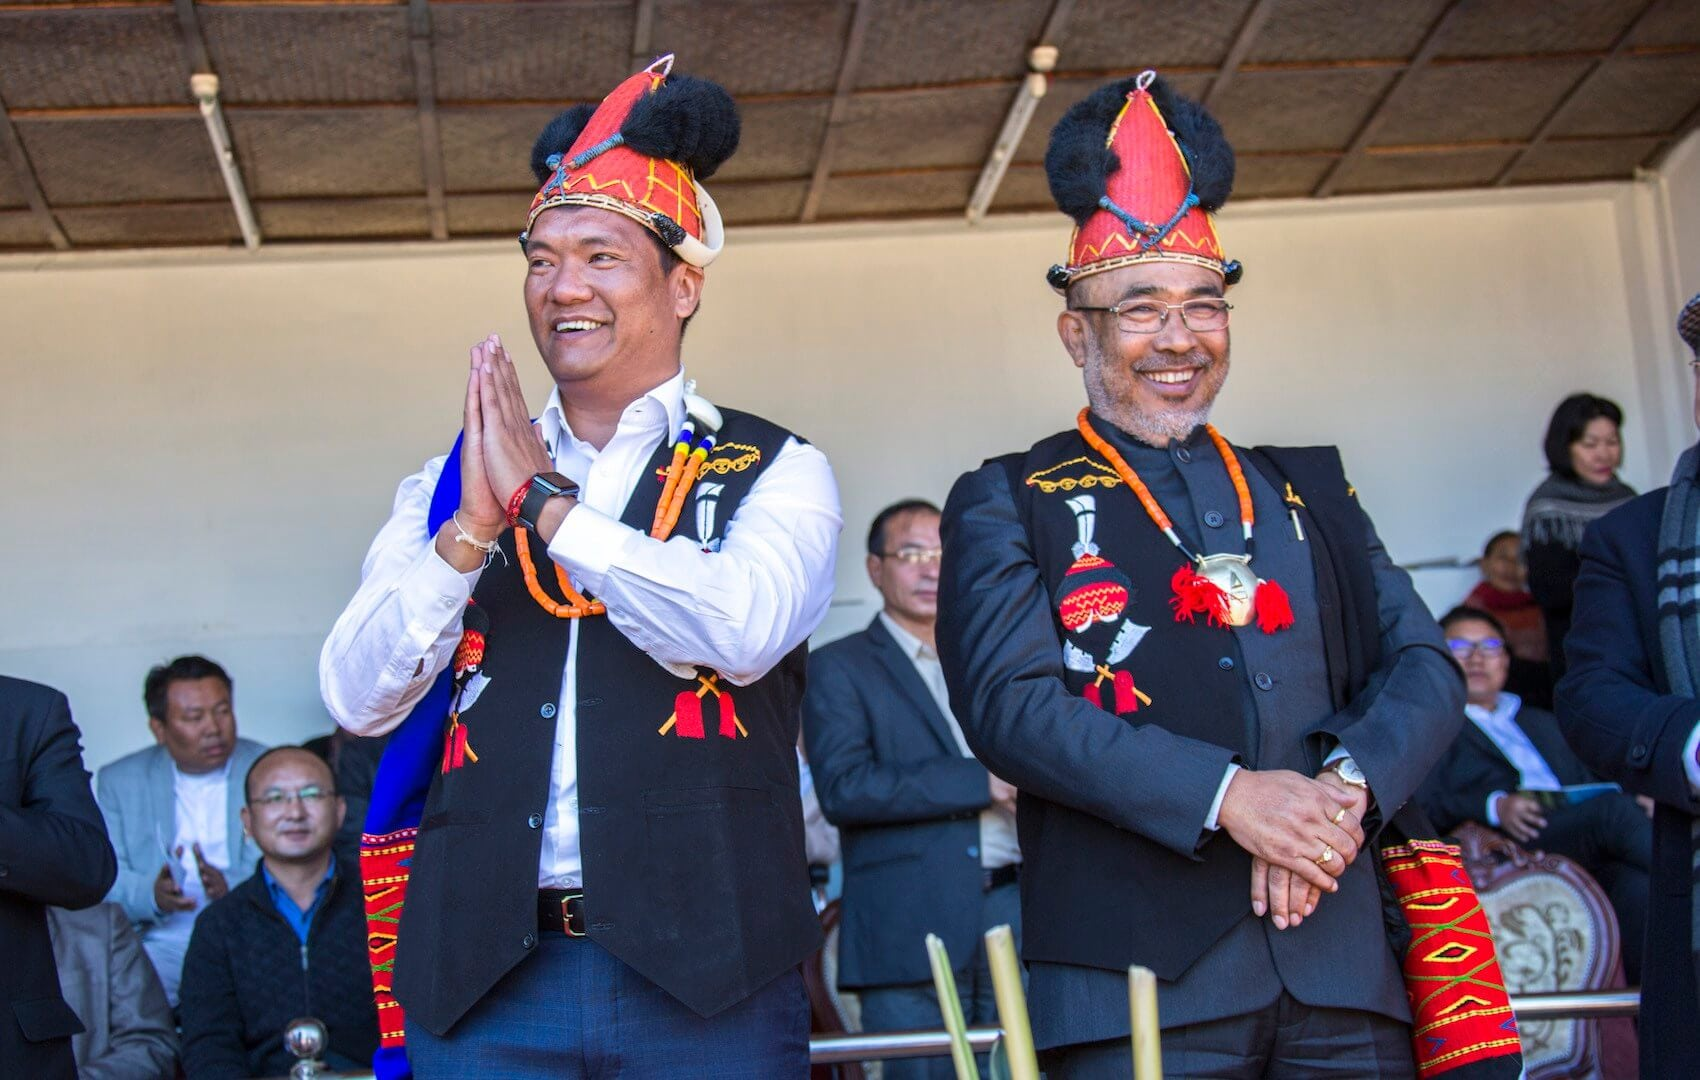 Manipur Chief Minister Expresses Strong Desire to Build Ties with Neighbouring North-eastern States